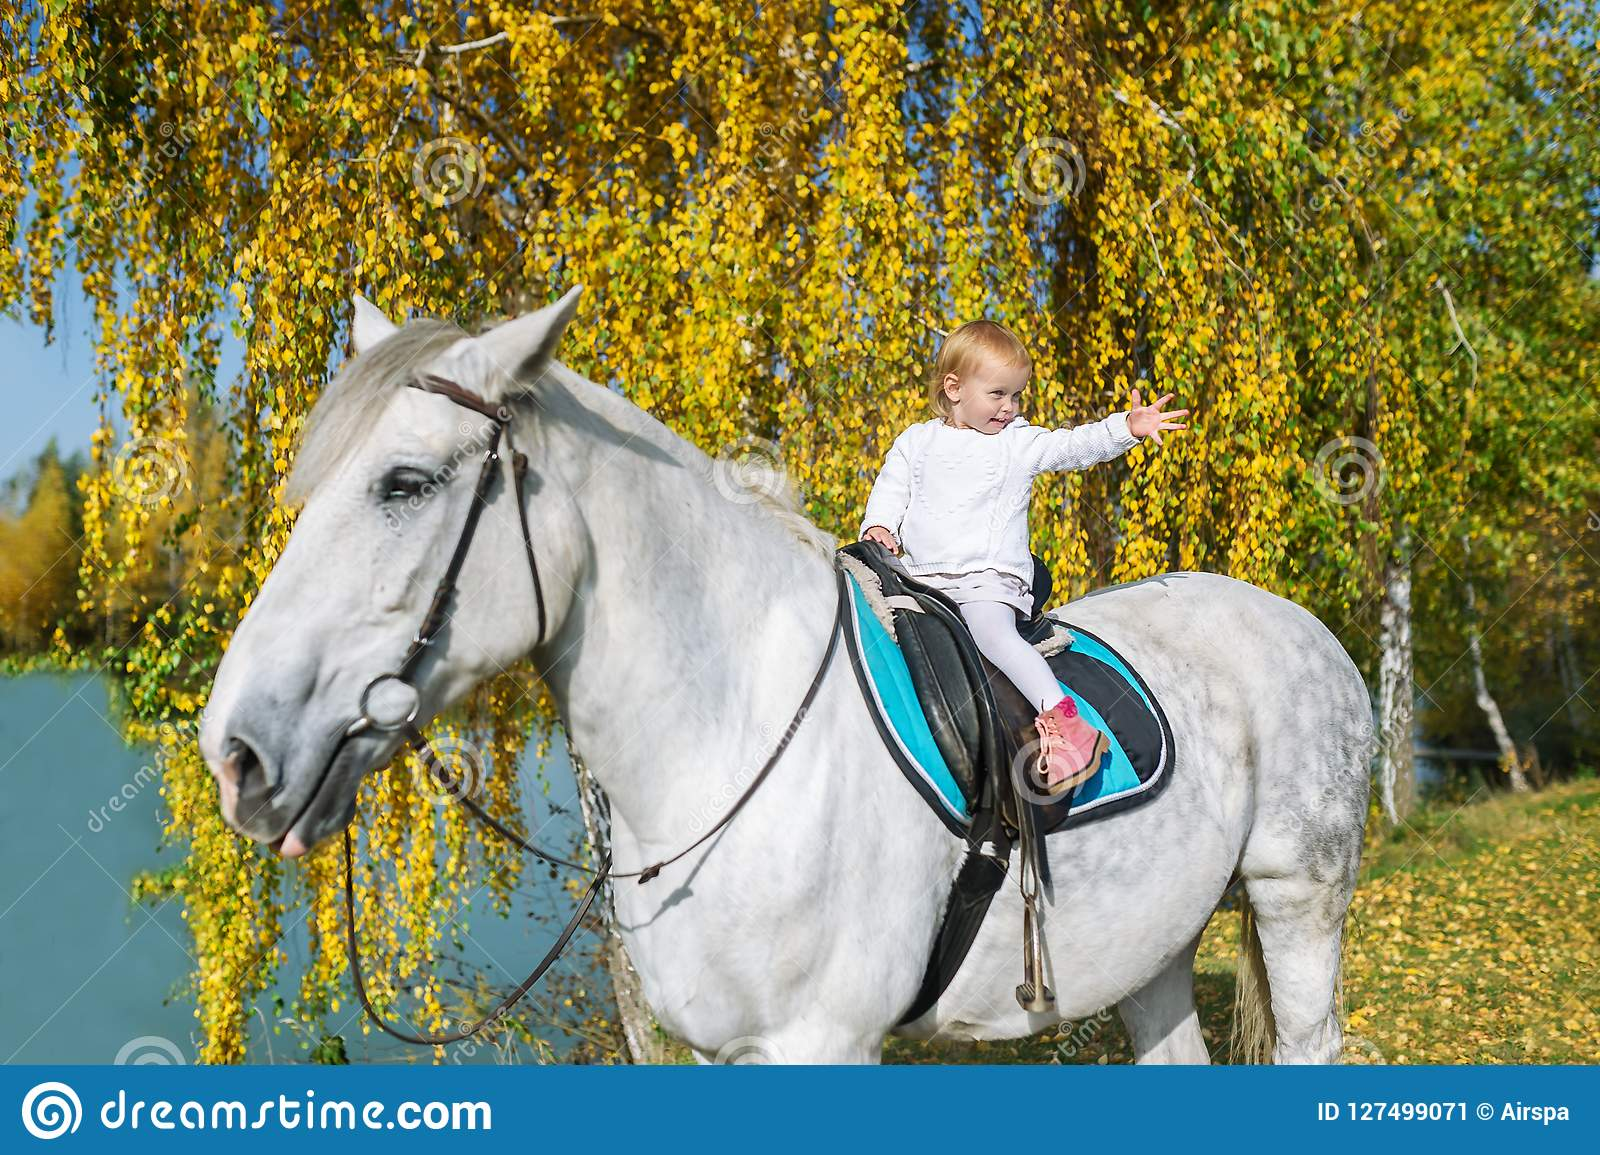 A Cute Baby Girl Is Sitting On A Beautiful White Horse In Autumn Nature Stock Image Image Of Animal Farm 127499071